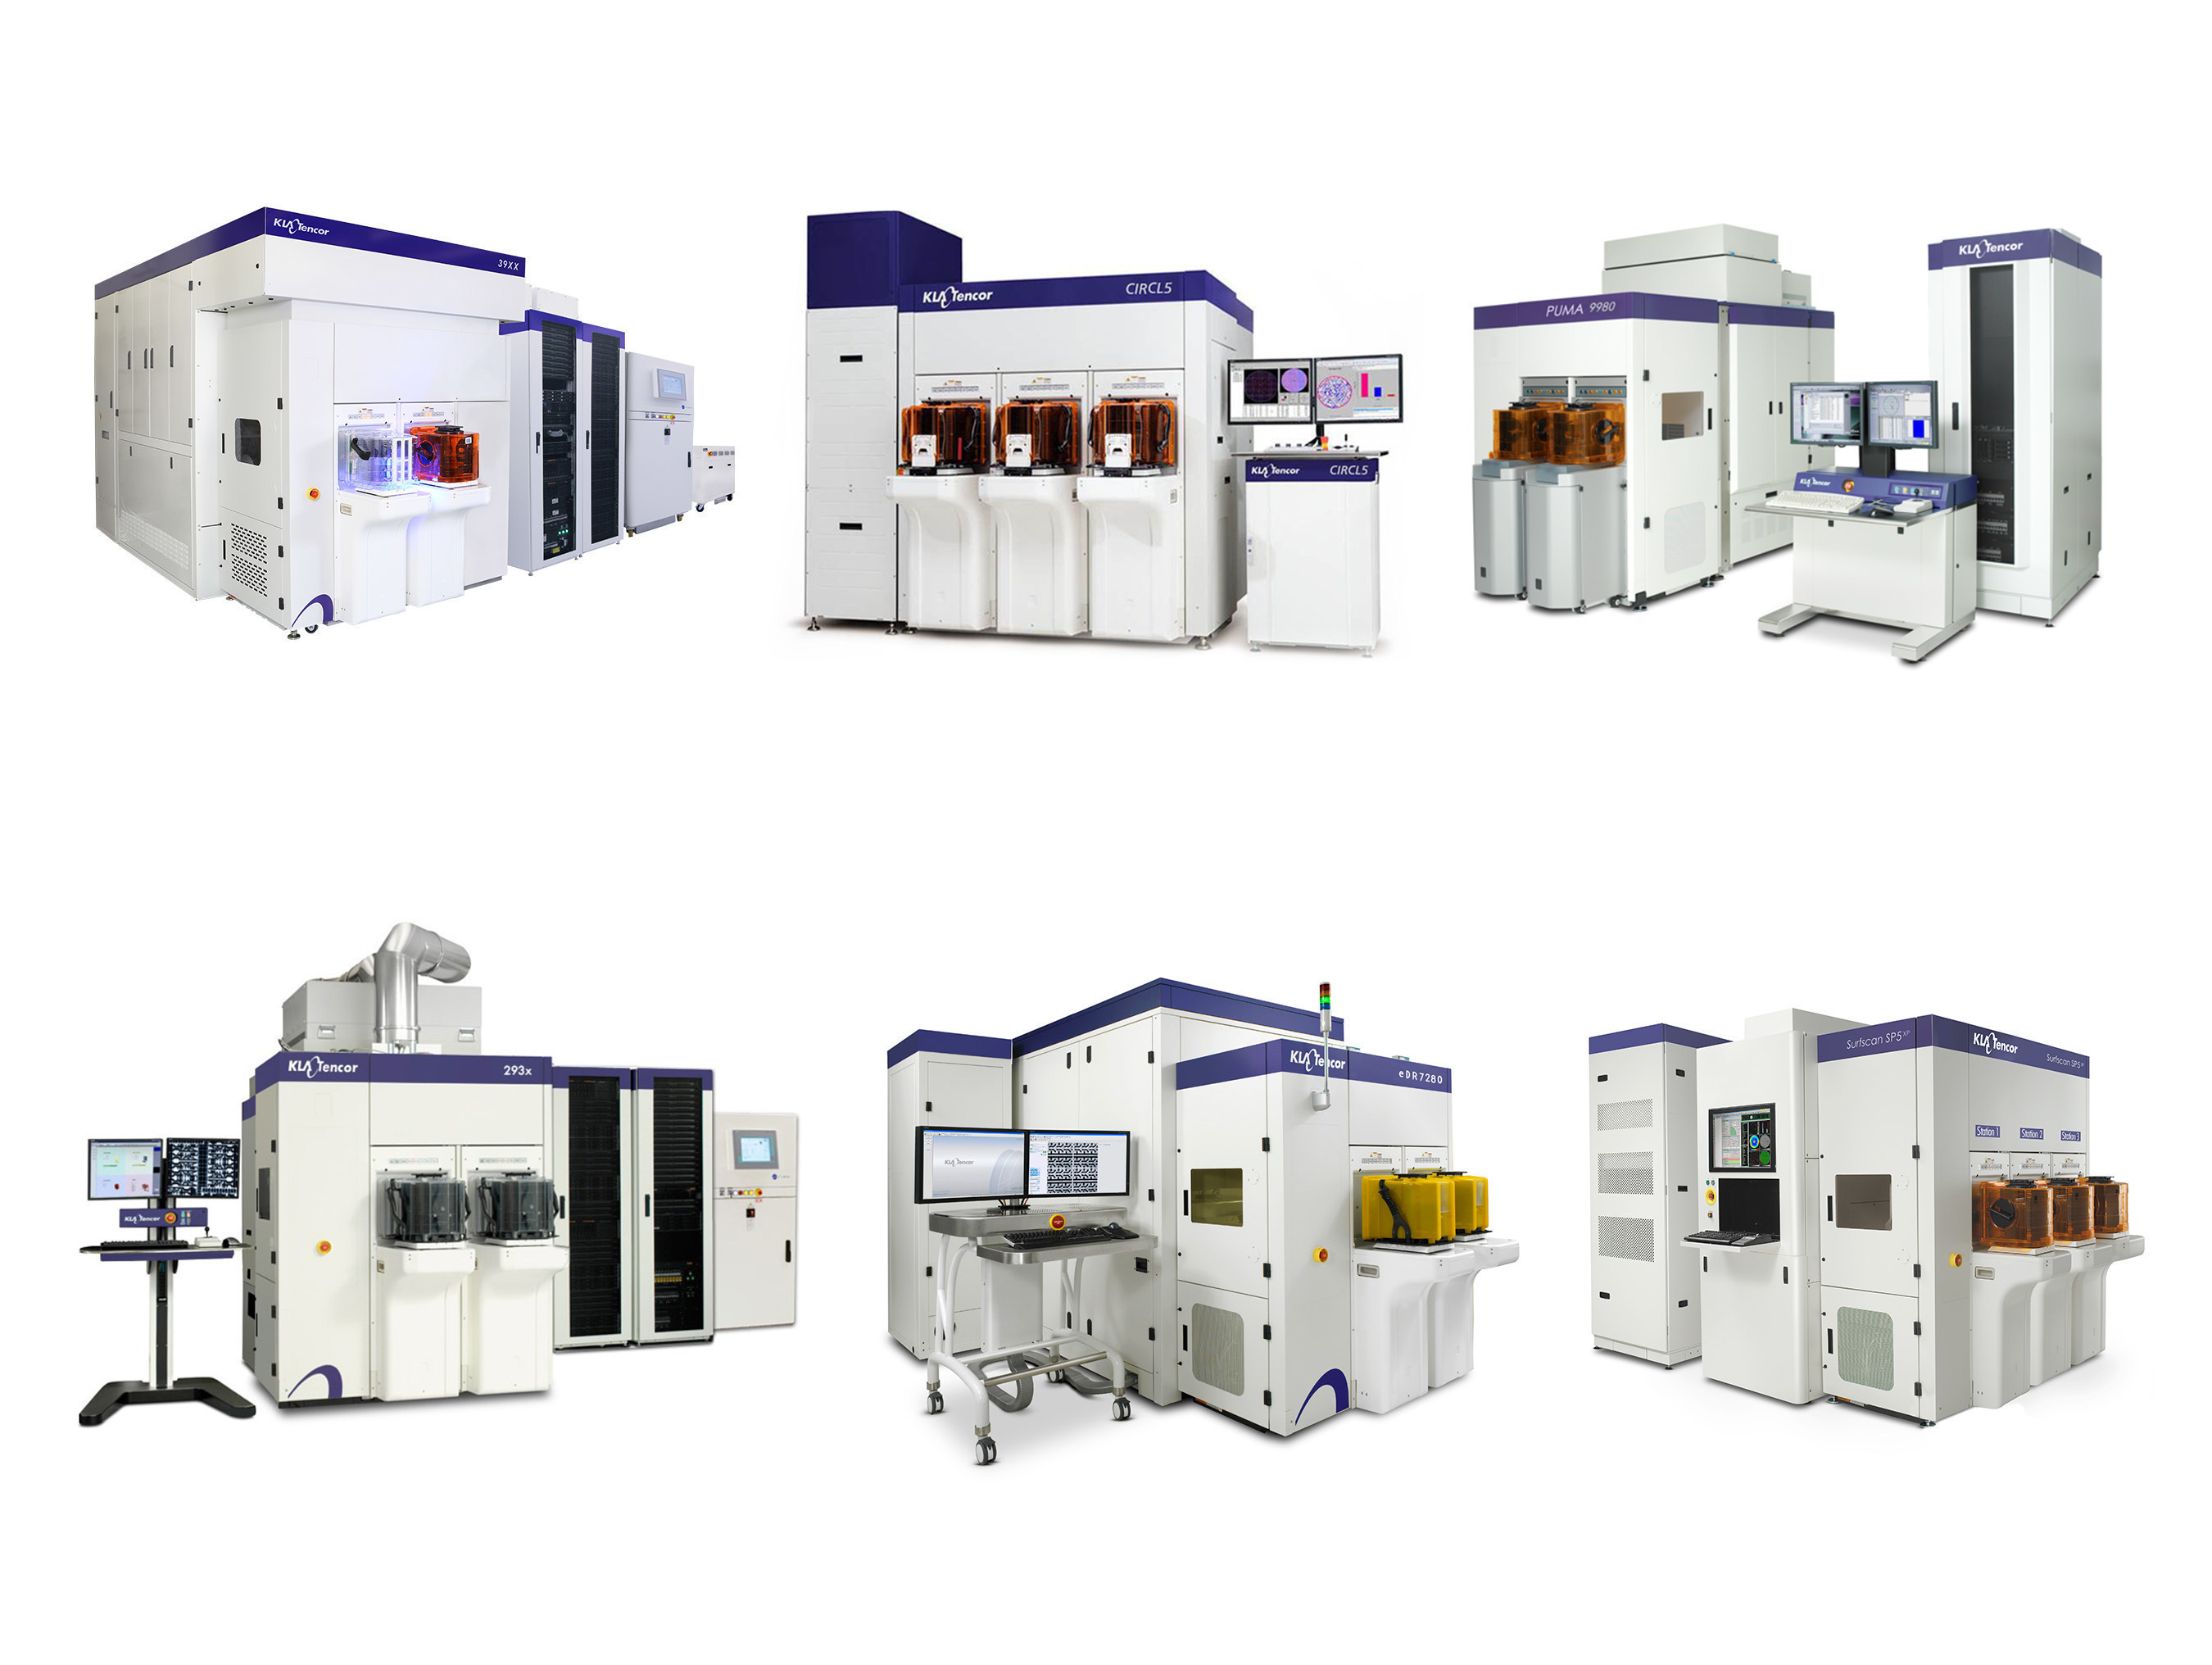 KLA-Tencor's comprehensive wafer inspection and review portfolio enables advanced defect discovery and process monitoring, supporting leading-edge IC manufacturing